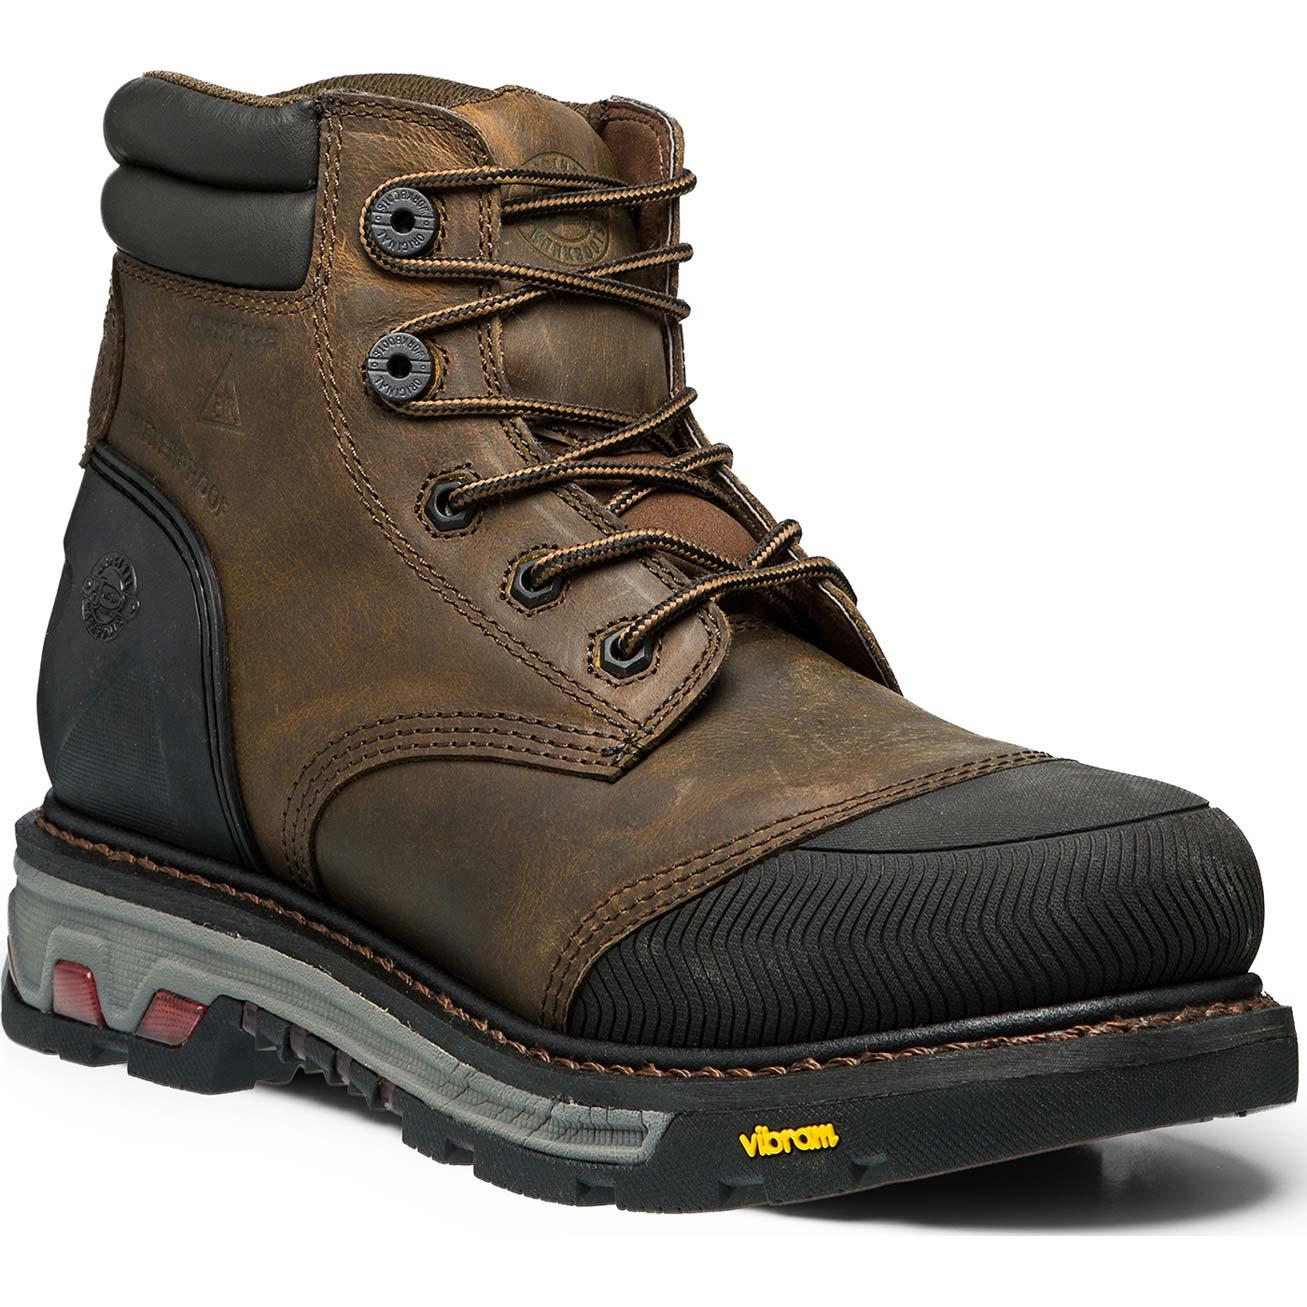 Justin Original Workboots Warhawk Composite Toe Puncture